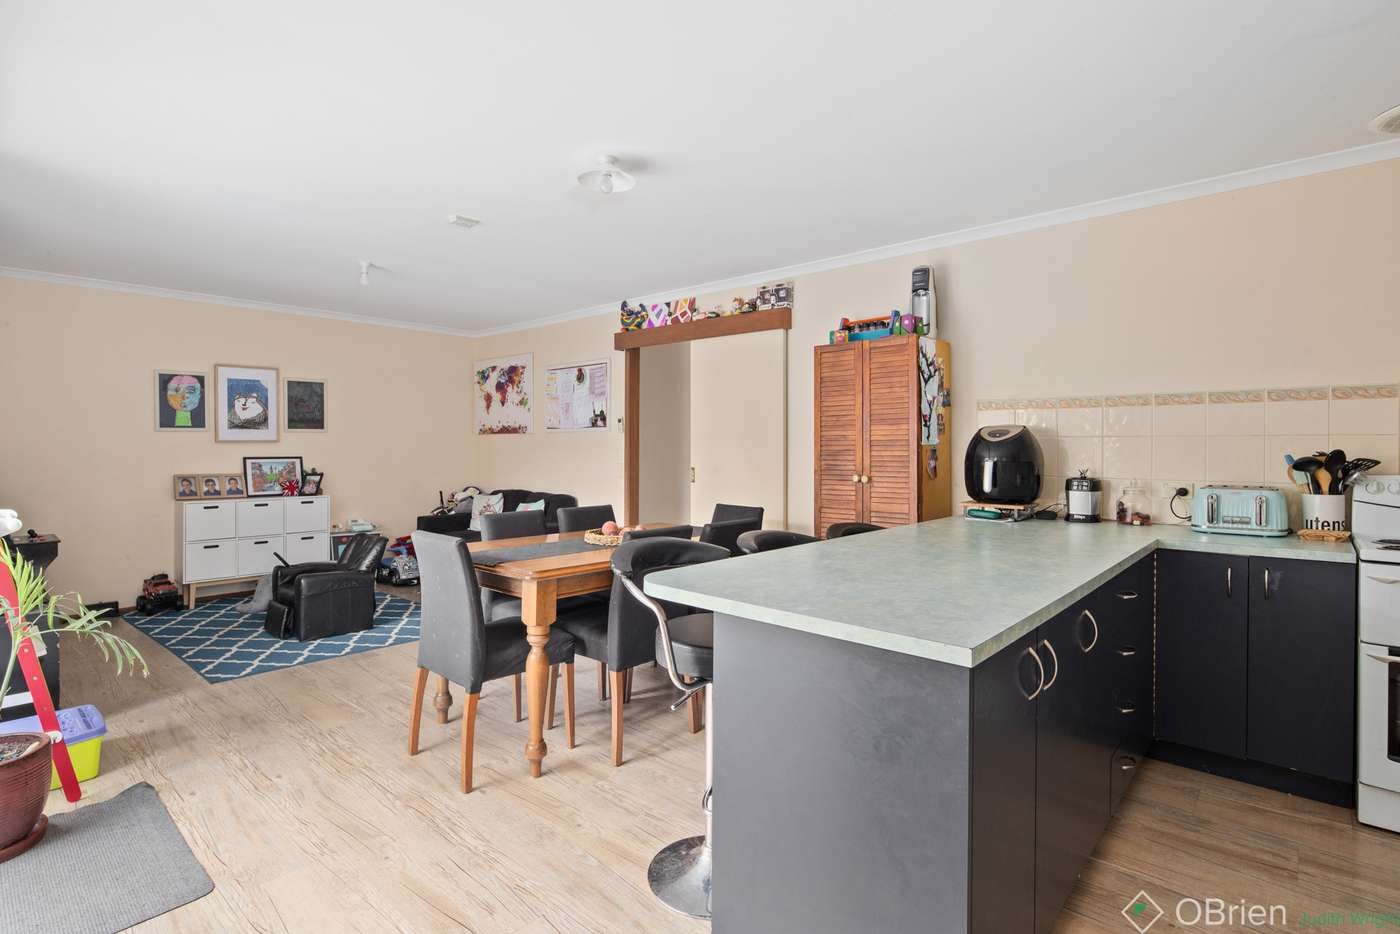 Fifth view of Homely house listing, 4 Waratah Close, Cowes VIC 3922